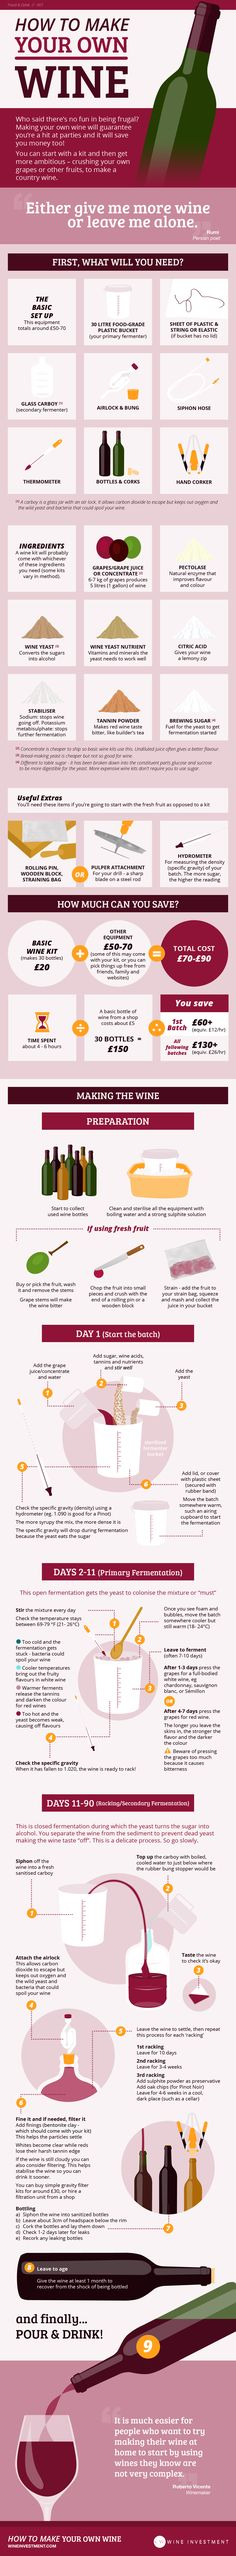 How to Make Your Own Wine #infographic #HowTo #Wine #Drinks #Food